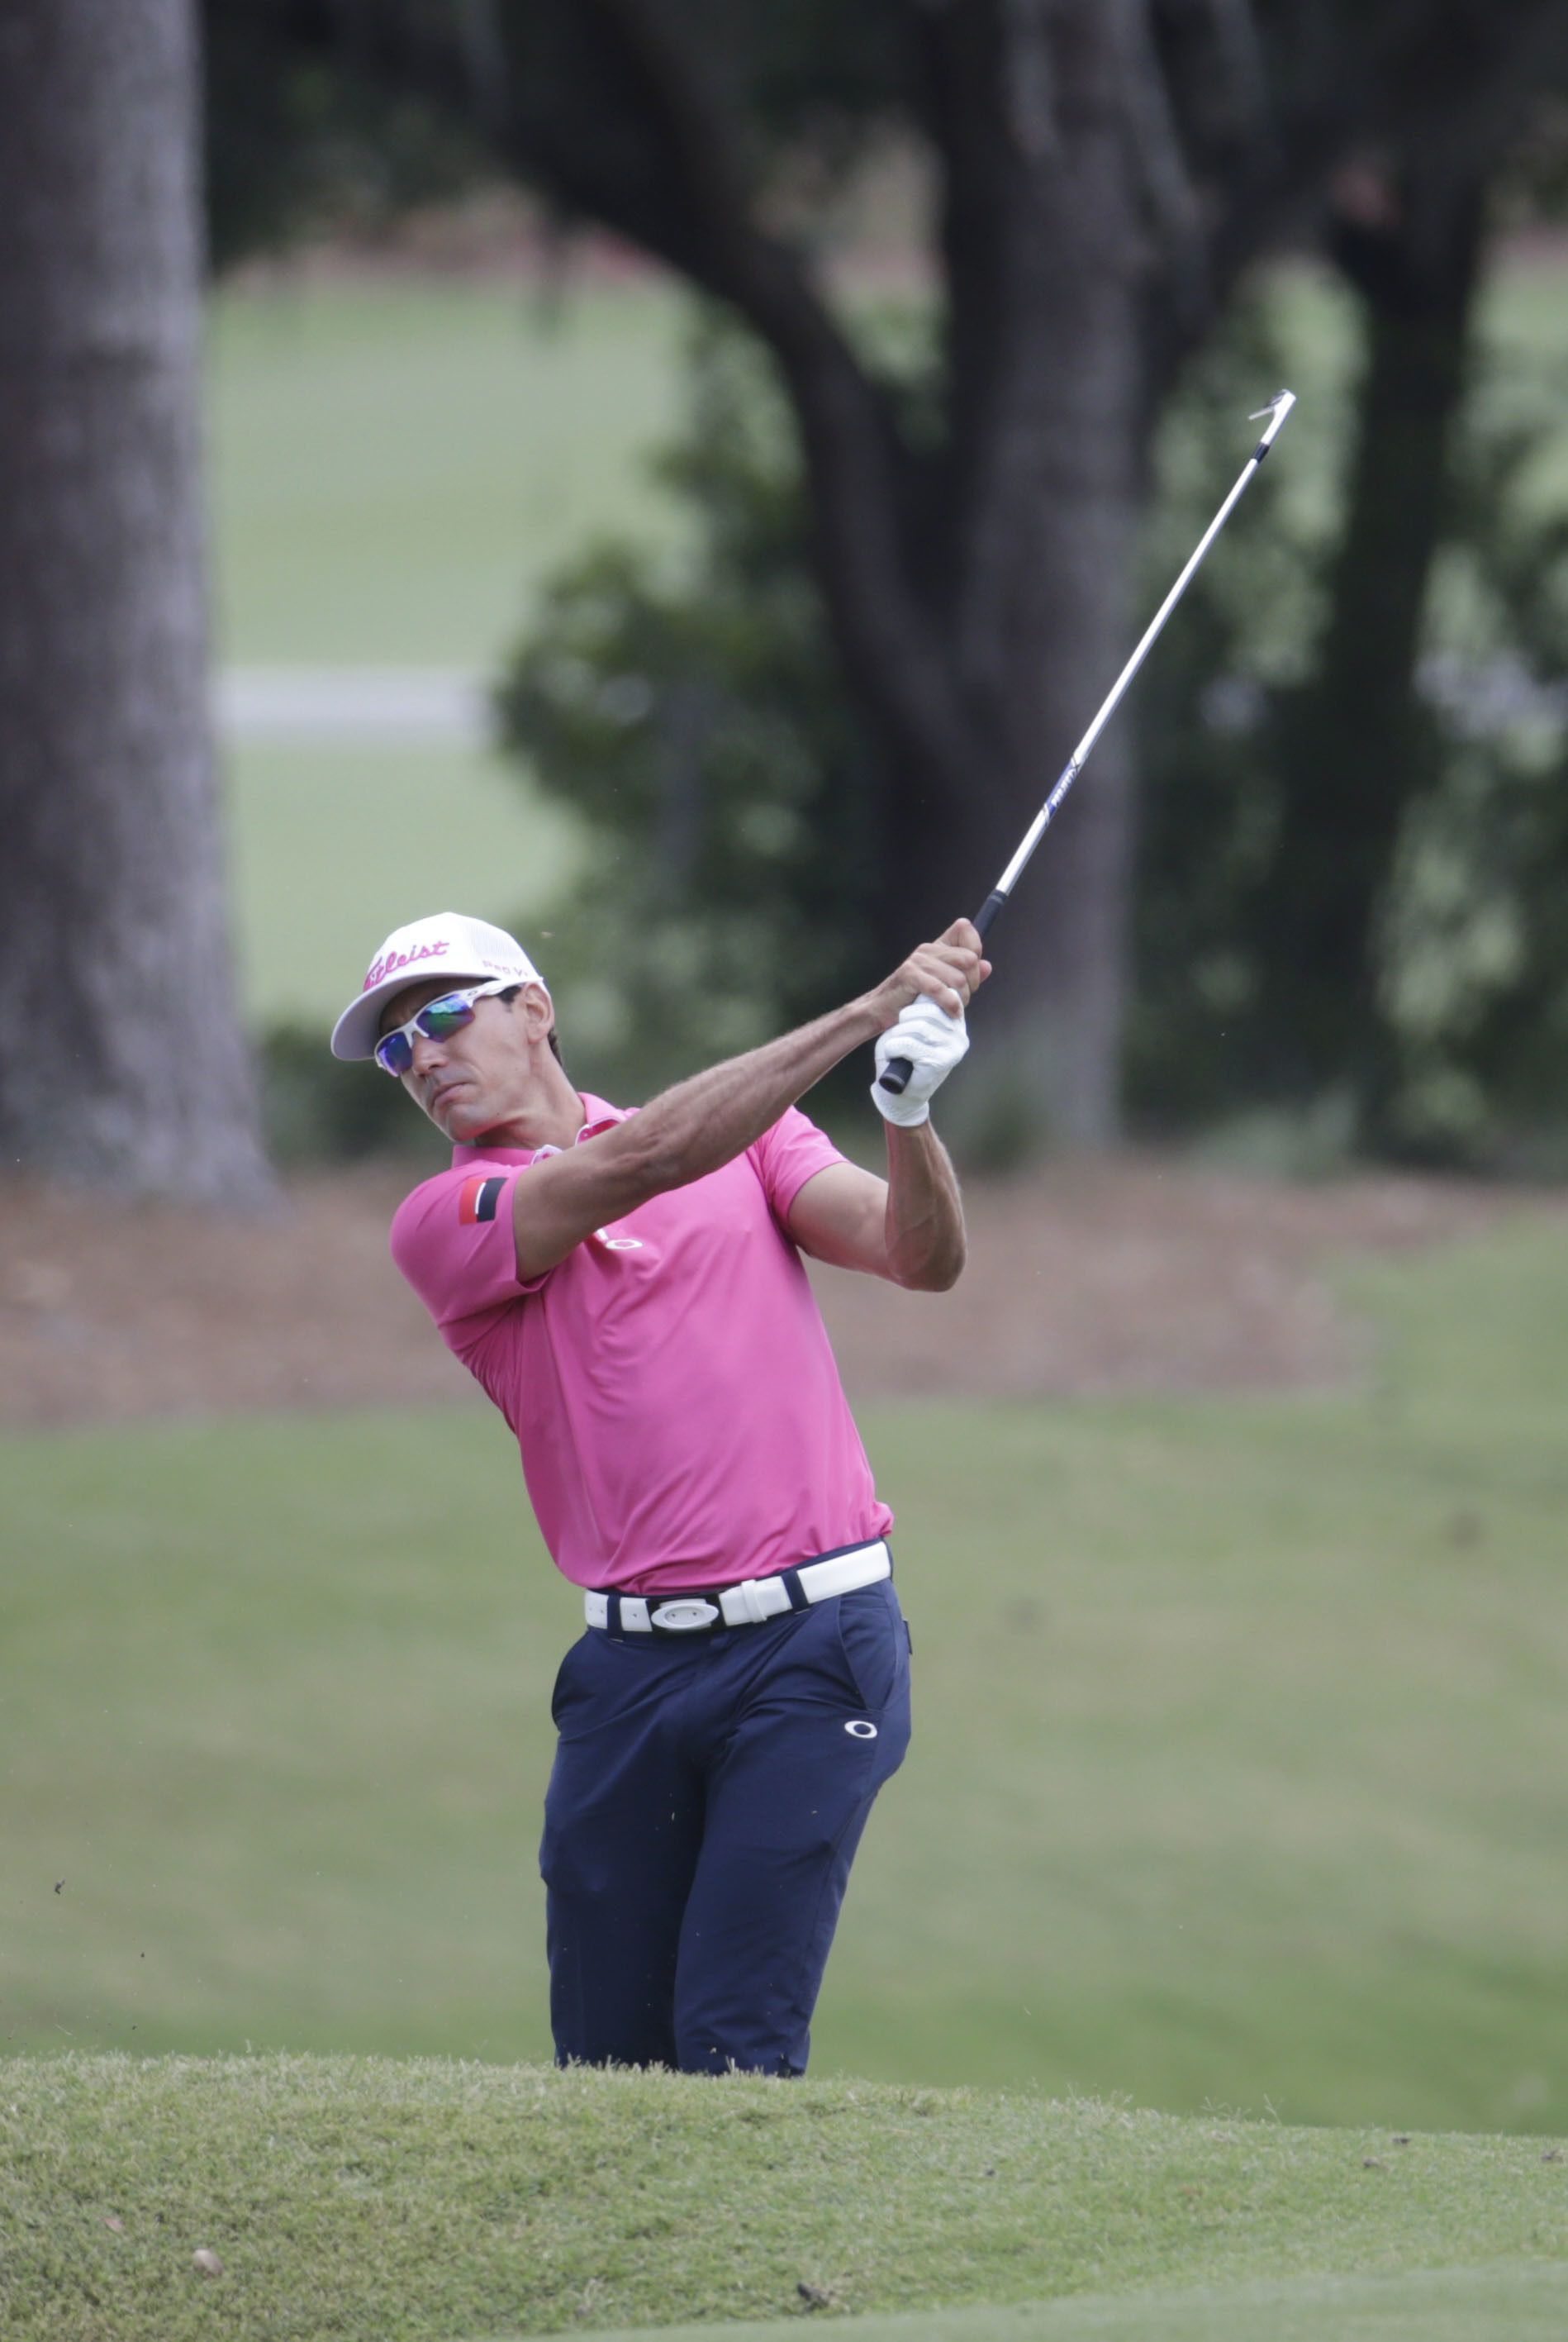 Rafa Cabrera Bello, of Spain, hits from the first fairway during the final round of The Players Championship golf tournament Sunday, May 14, 2017, in Ponte Vedra Beach, Fla. (AP Photo/Lynne Sladky)